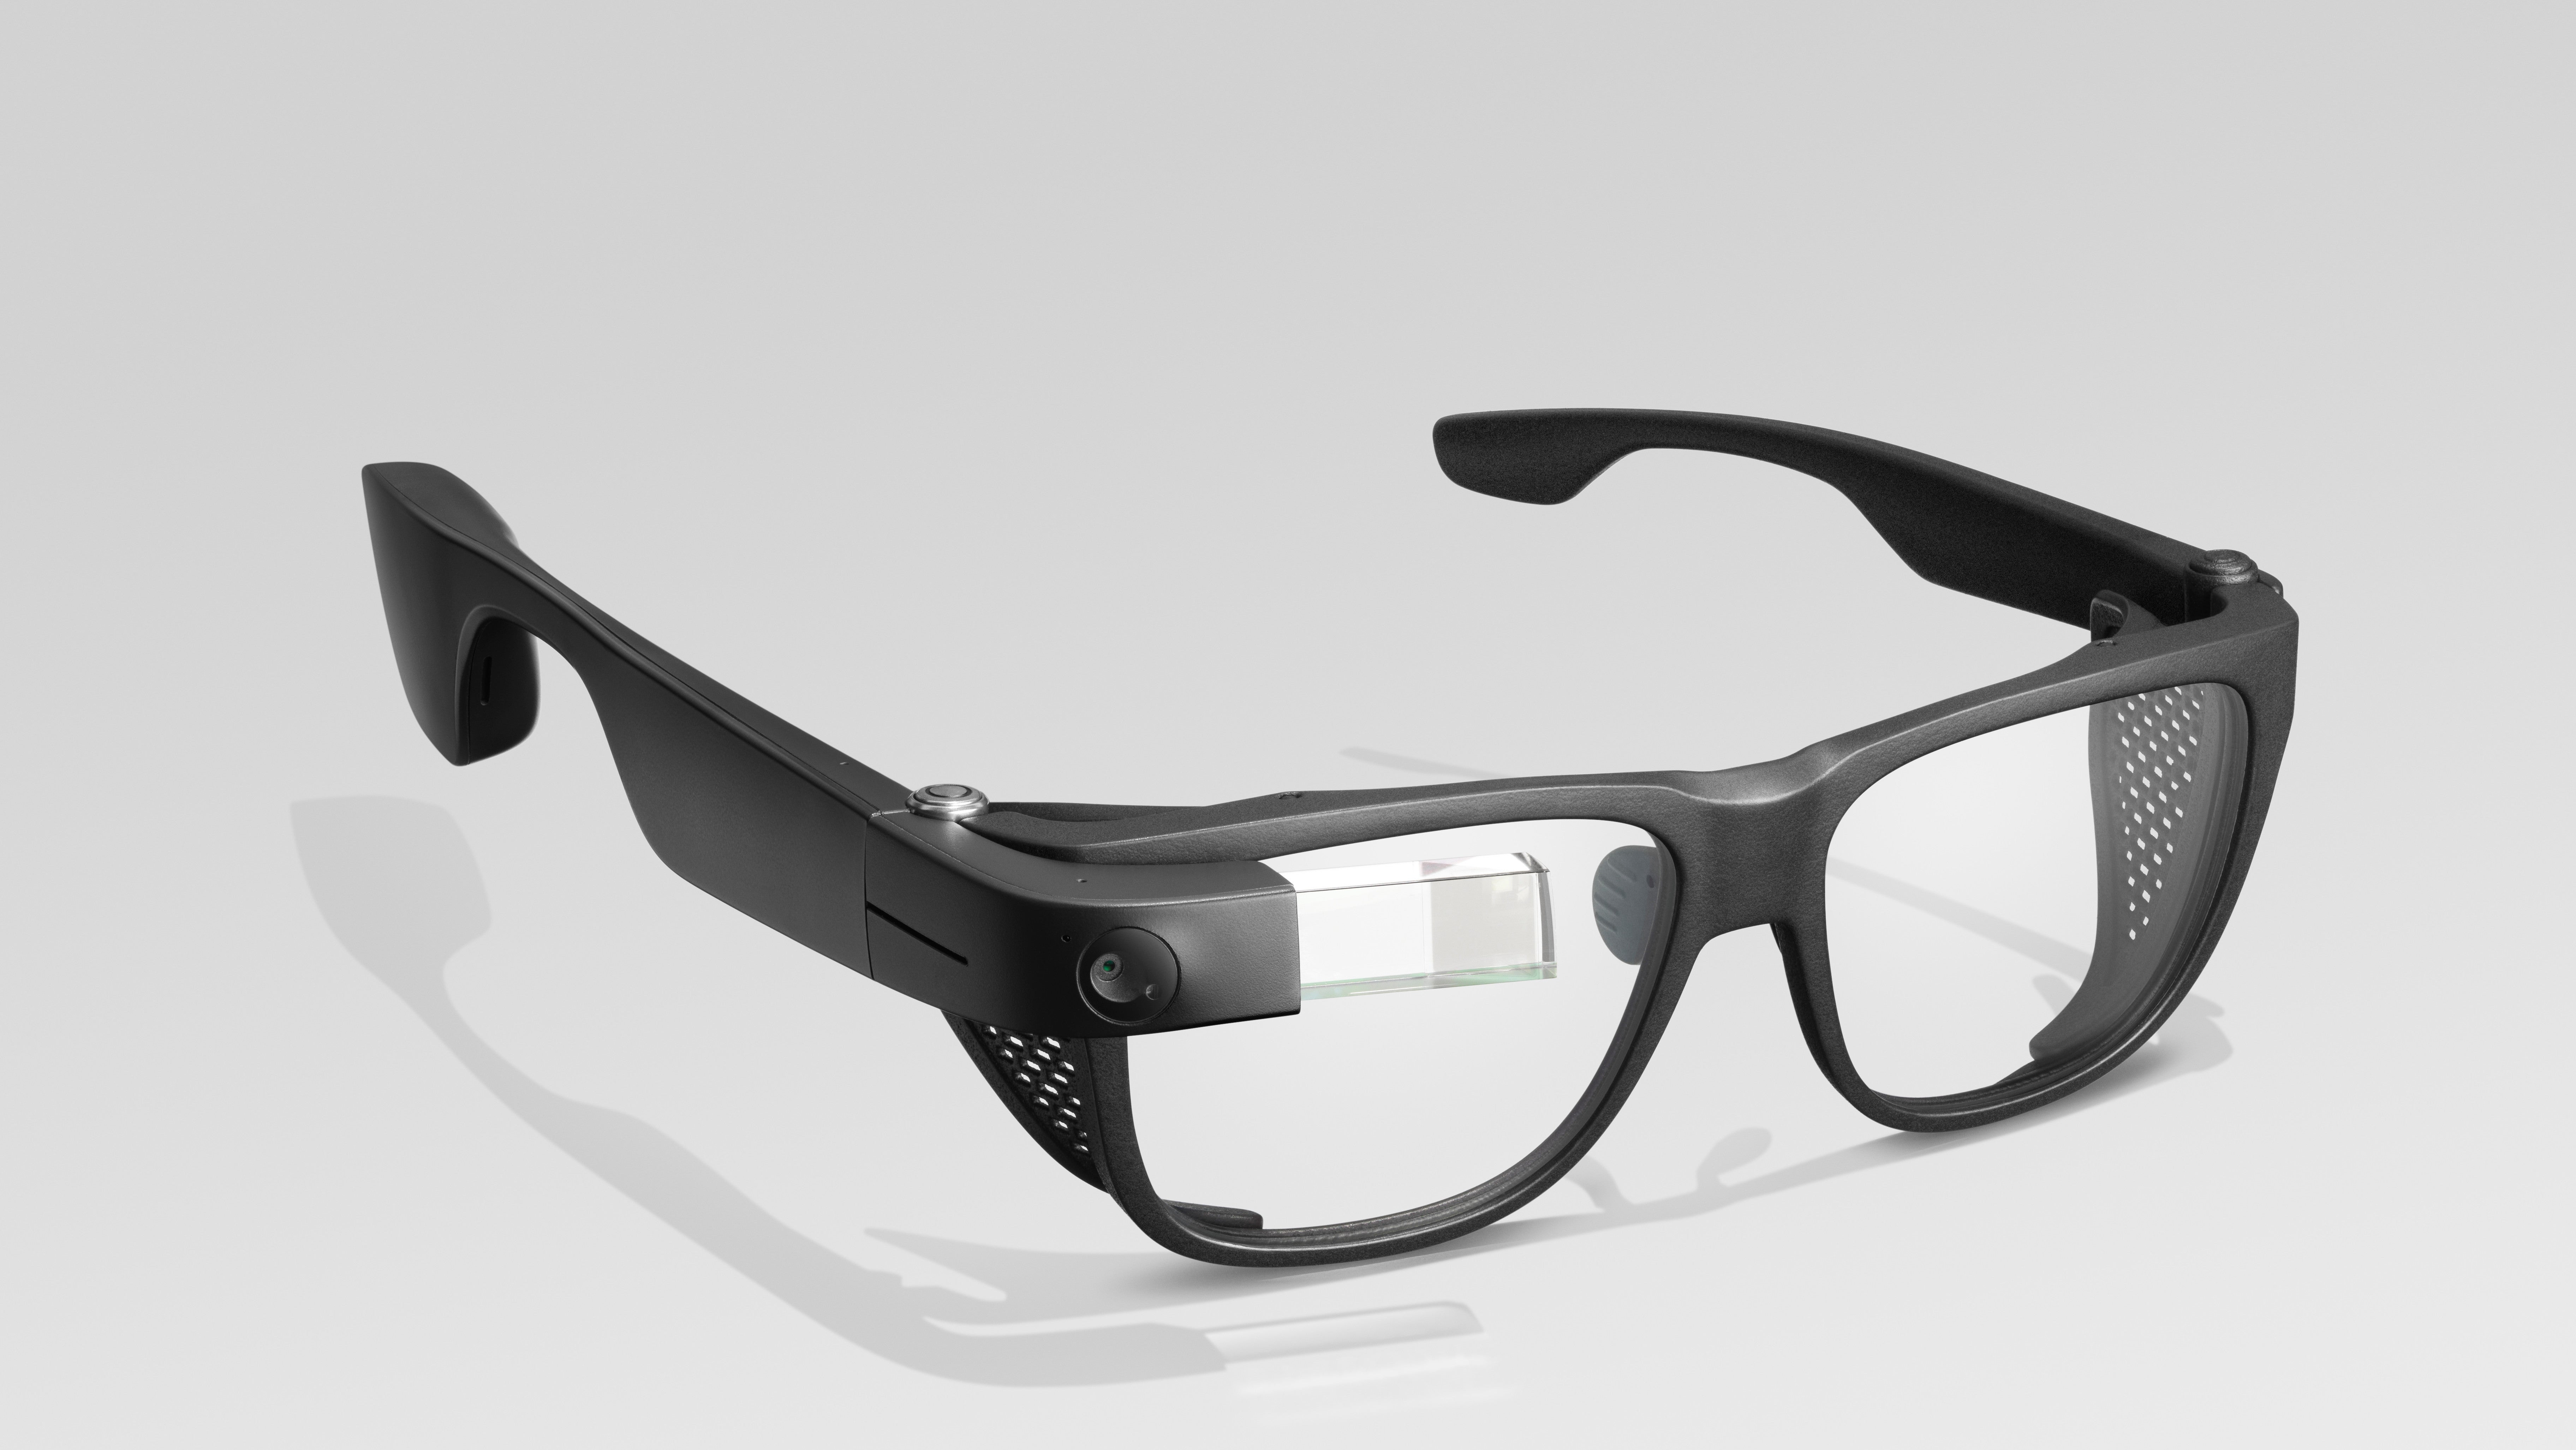 Google Glass Gets A Fresh Update With More Powerful Guts, Still Look Dorky As Hell